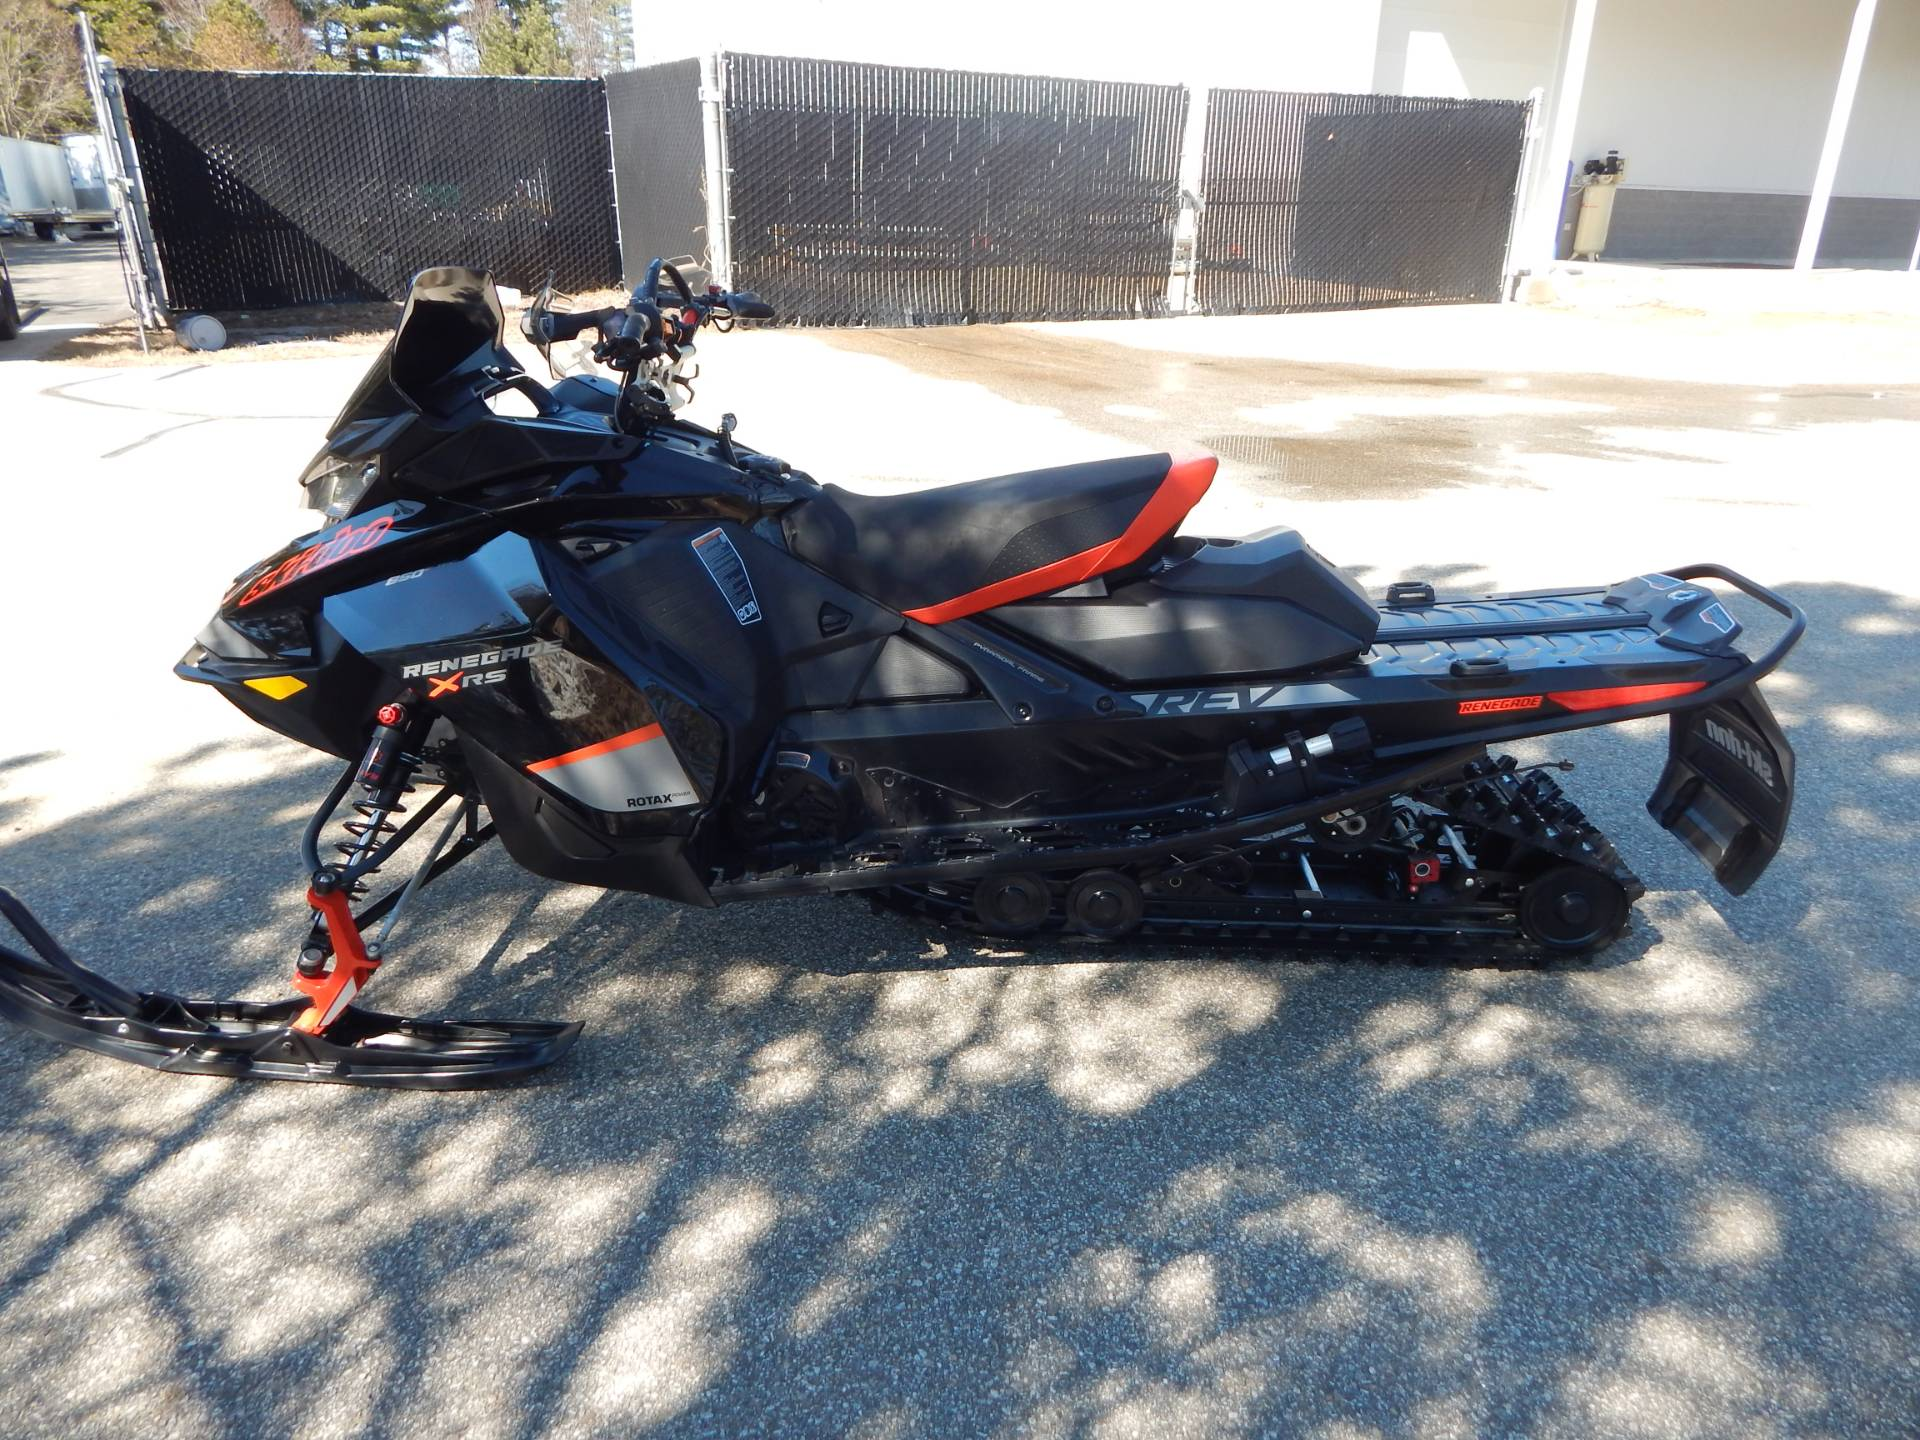 2020 Ski-Doo Renegade X-RS 850 E-Tec in Concord, New Hampshire - Photo 6